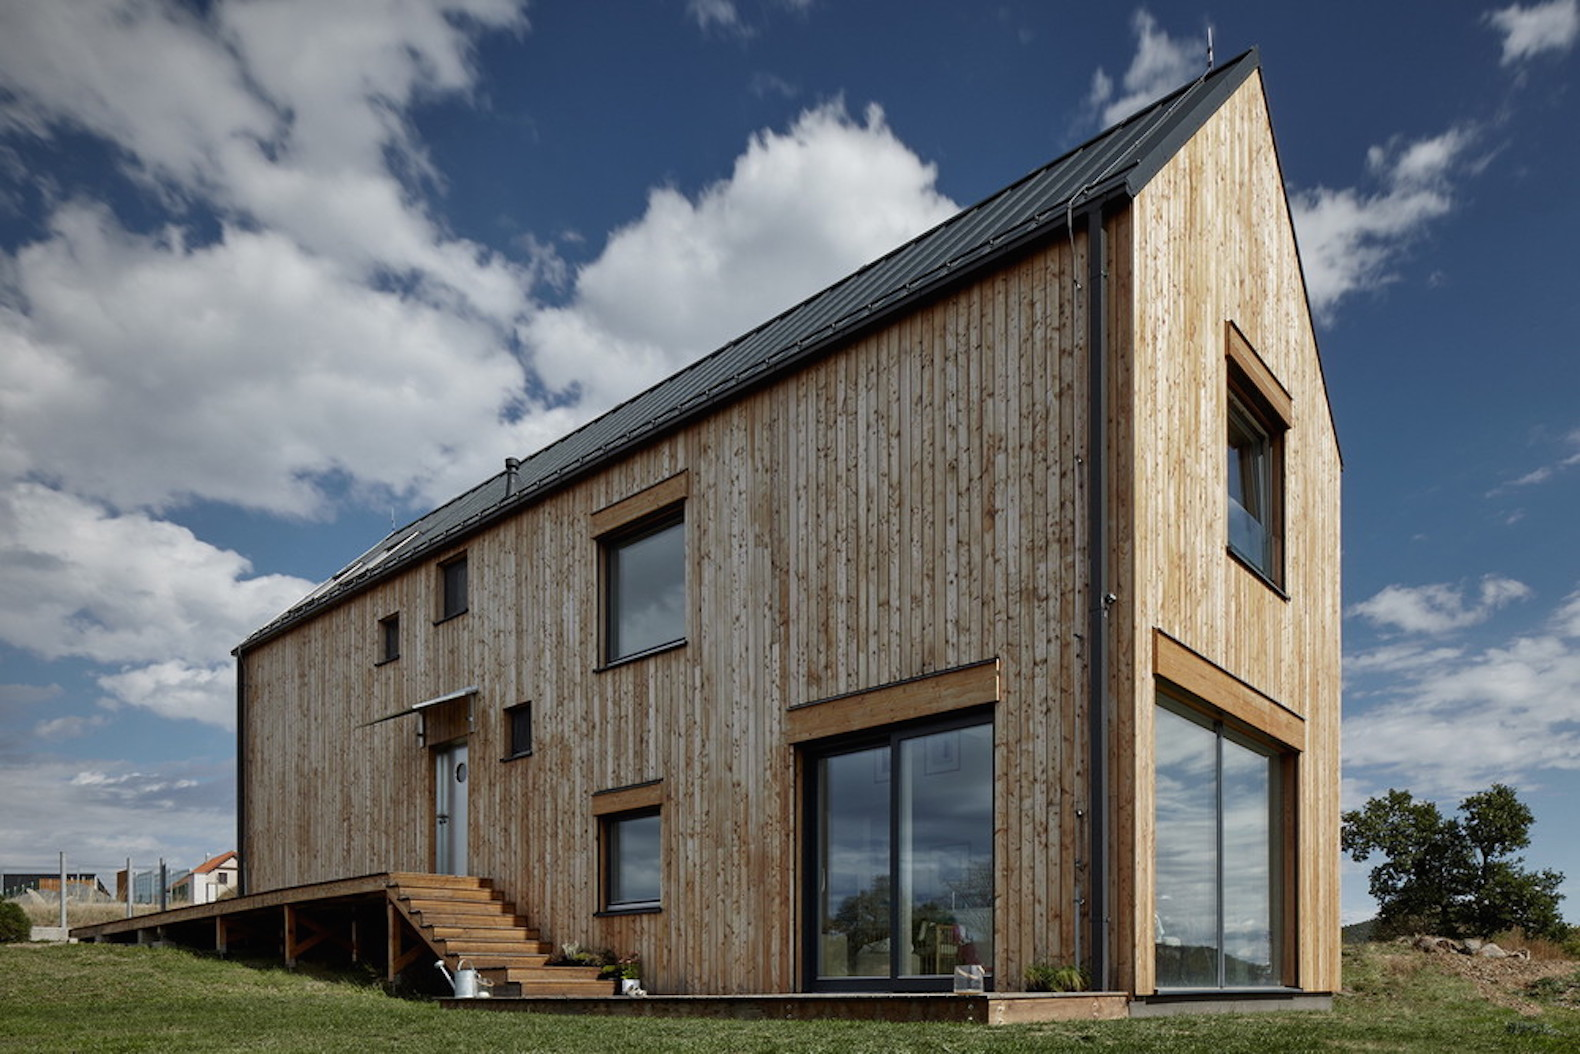 Barn-inspired Markétka House in the Czech countryside will age beautifully over time